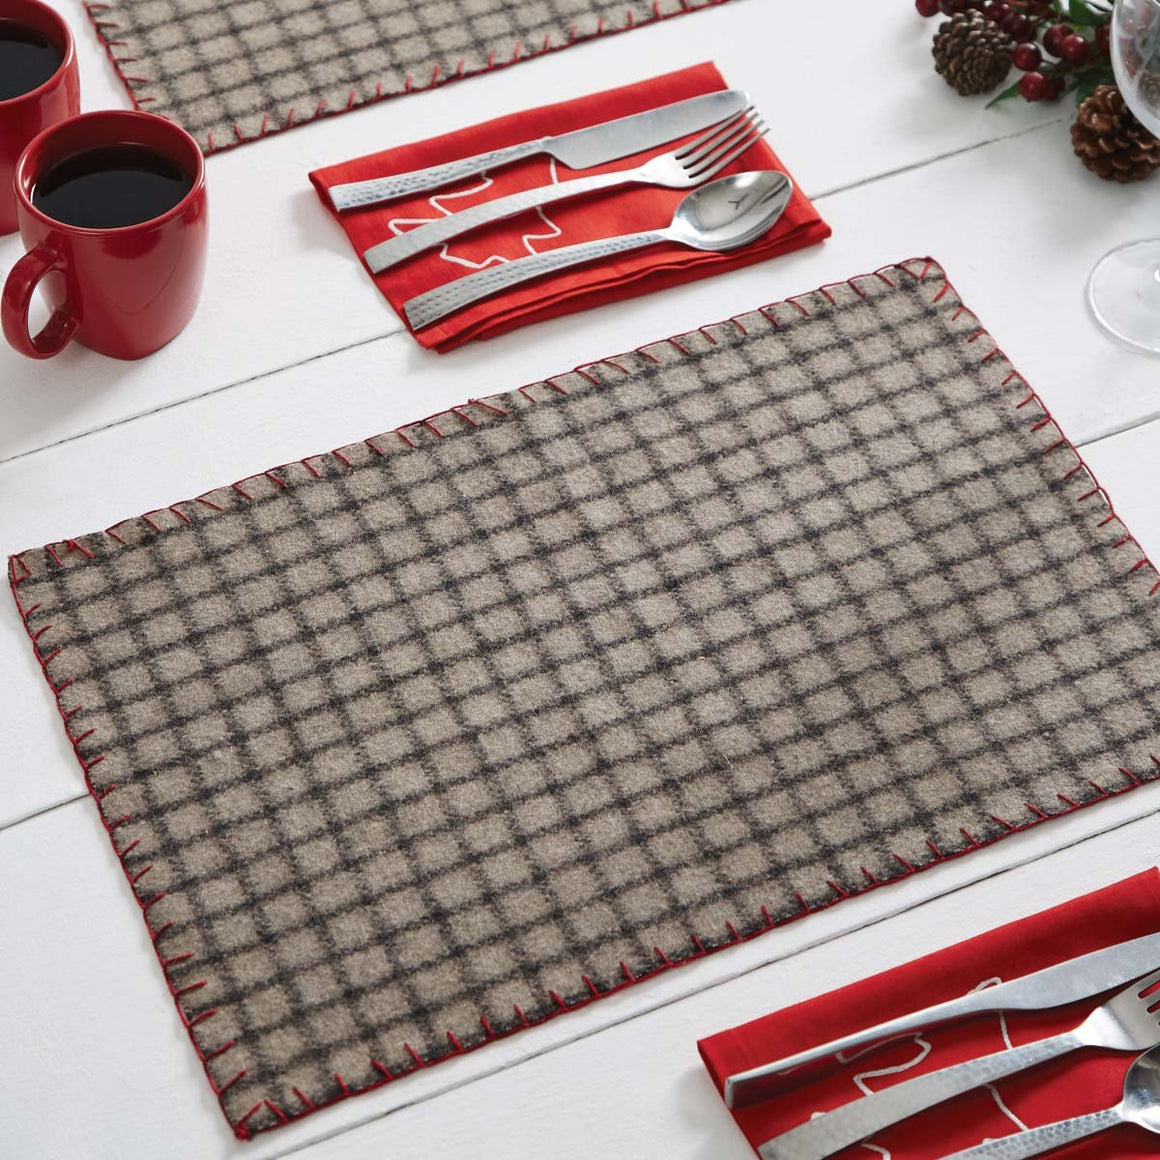 Weston Placemat Set of 6 12x18